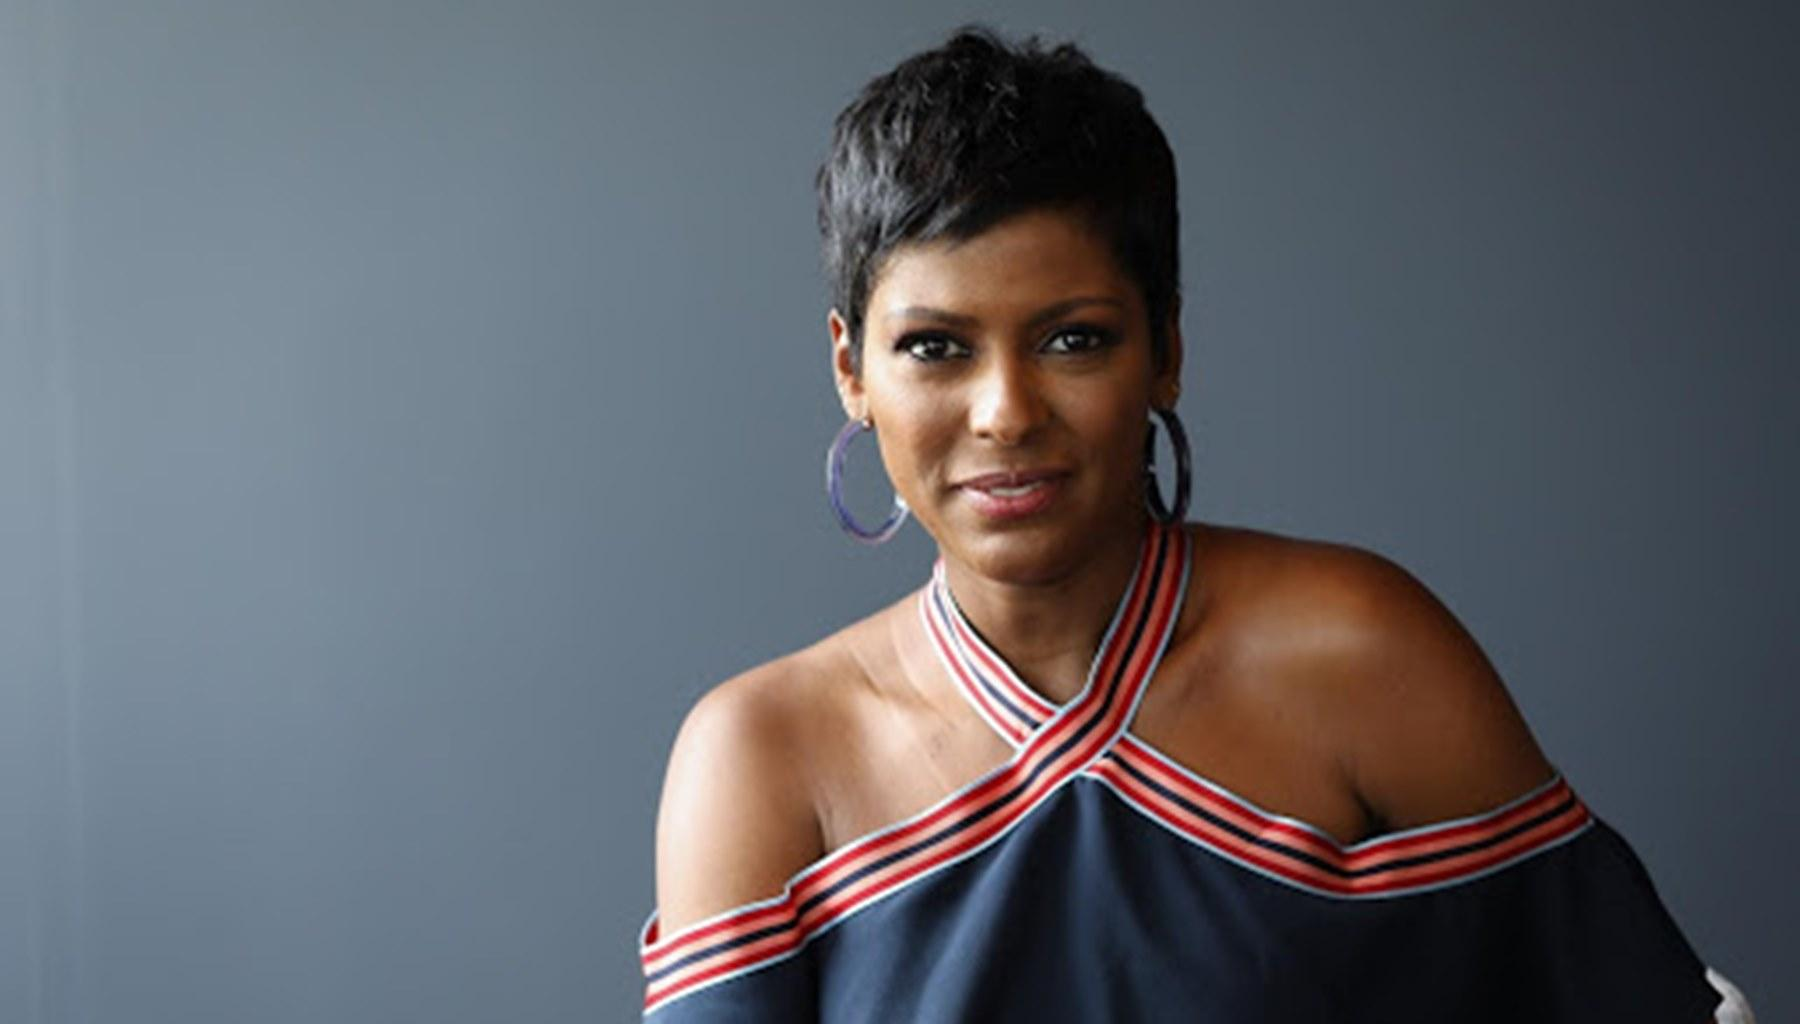 Tamron Hall Shares A Photo Where She Is Being A Supermom To Baby Moses; But Her Fans Sparked A Debate For This Reason